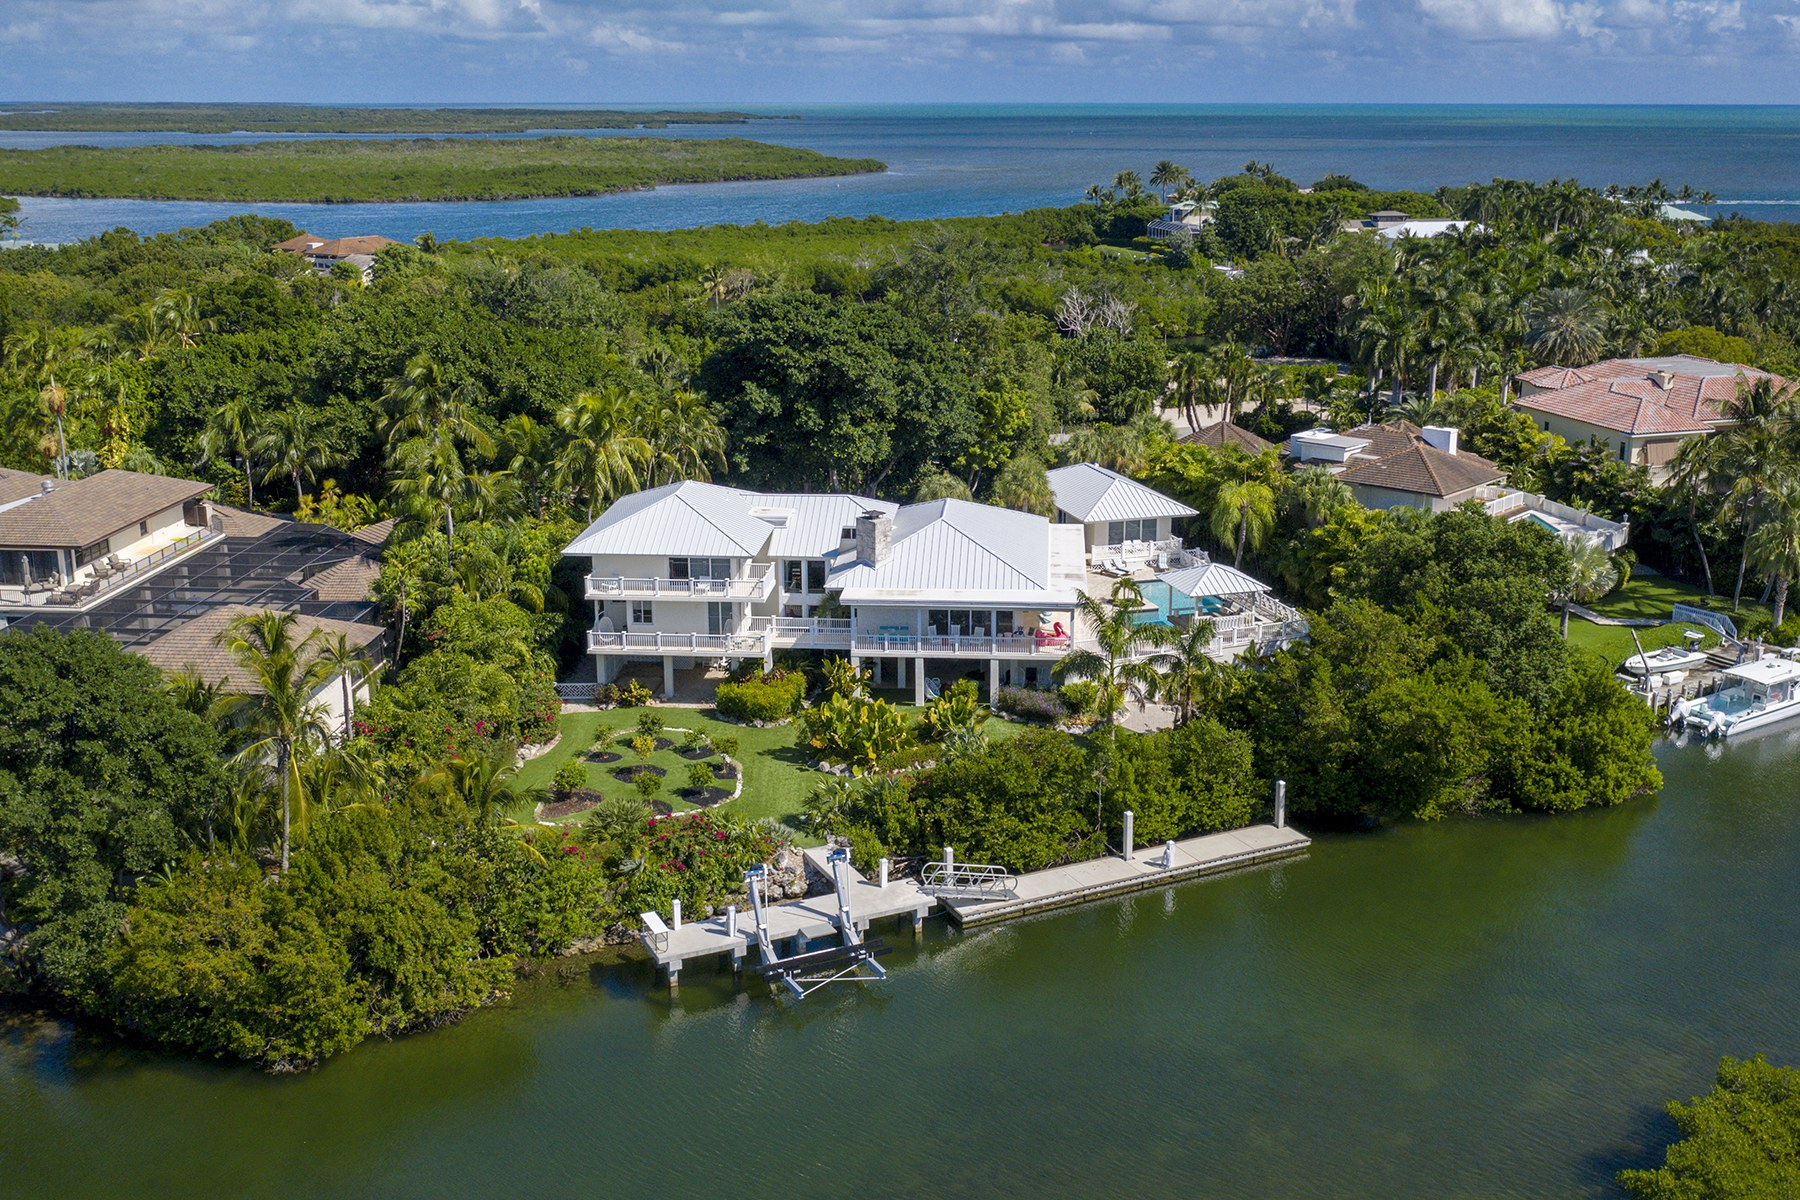 Single Family Homes のために 売買 アット 28 Cardinal Lane, Key Largo, FL Key Largo, フロリダ 33037 アメリカ